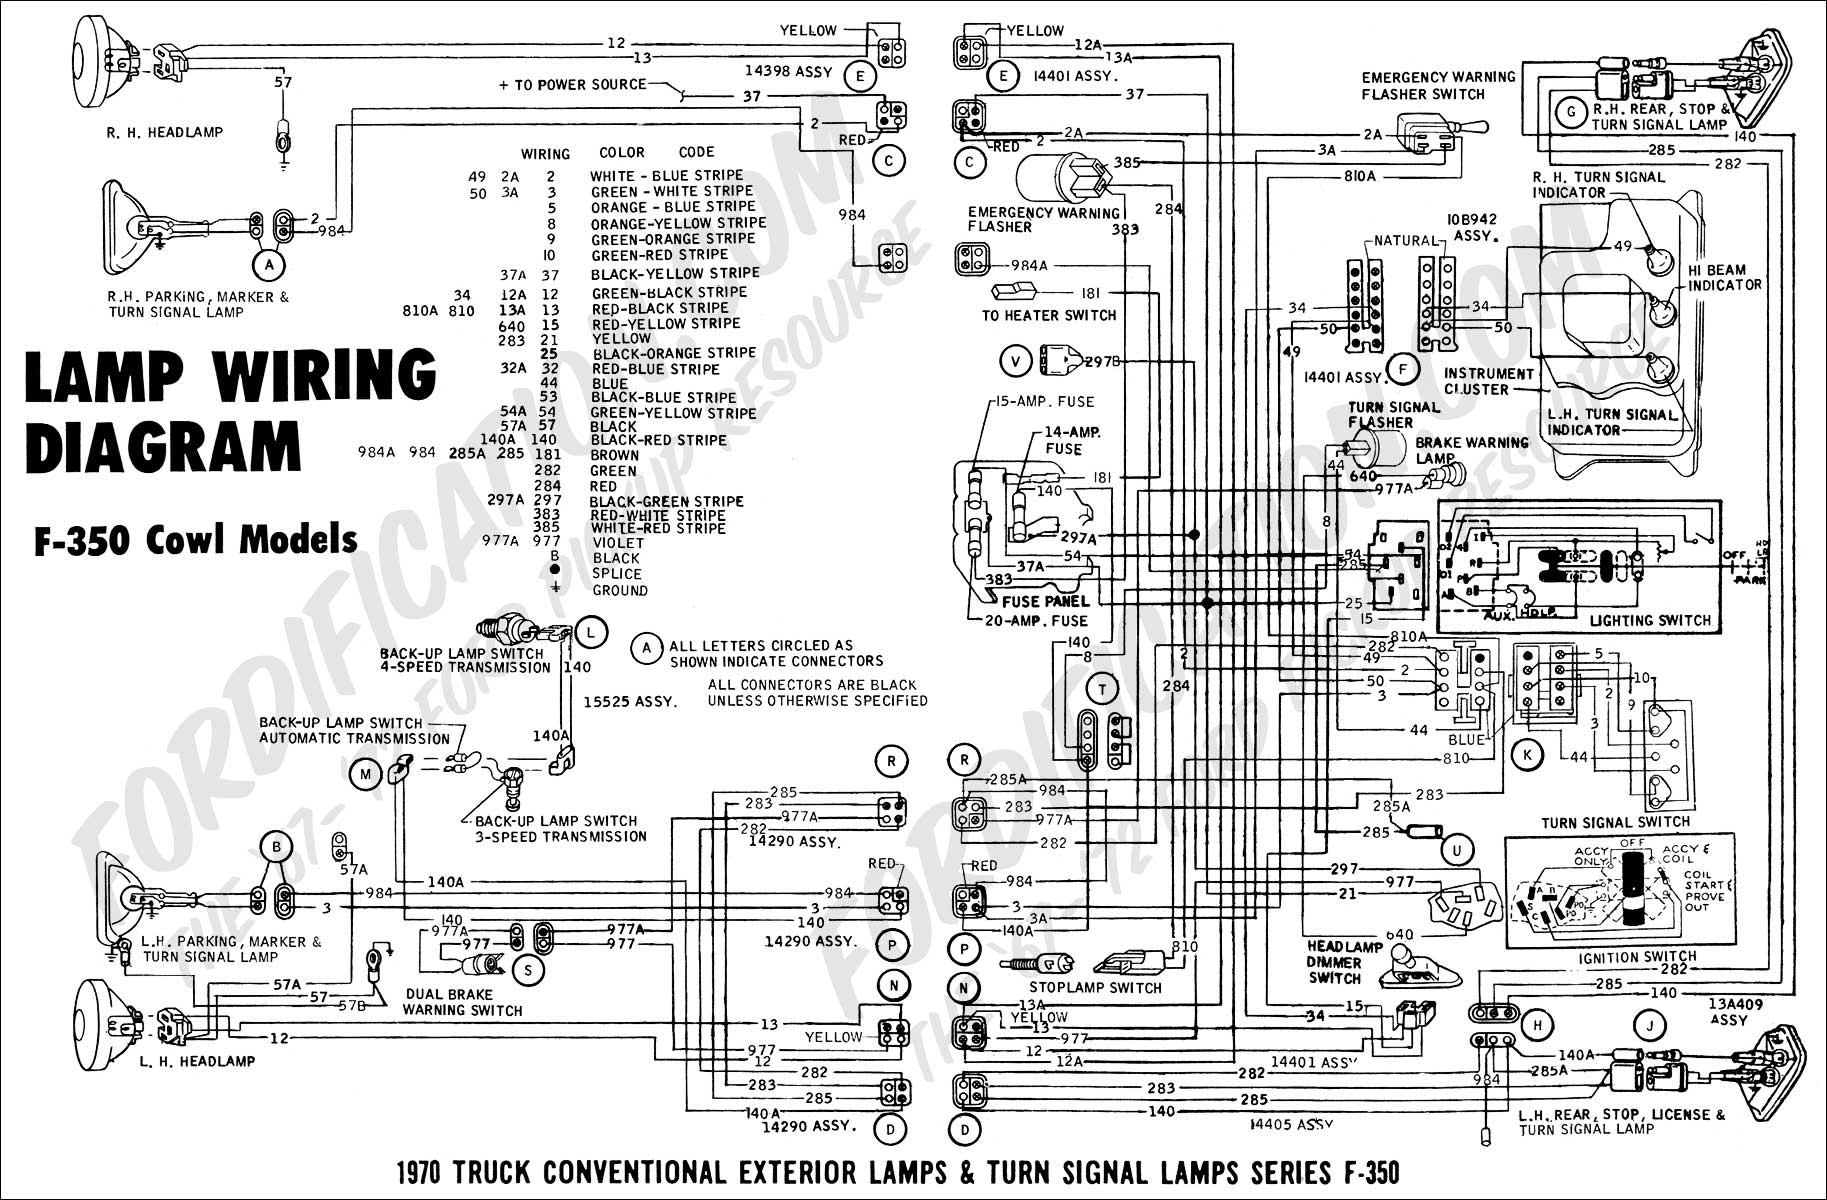 wiring diagram 70F350cowl_lights01?resize=665%2C437 diagrams 412300 2002 ford f150 wiring diagram solved need ford f150 headlight wiring diagram at gsmx.co